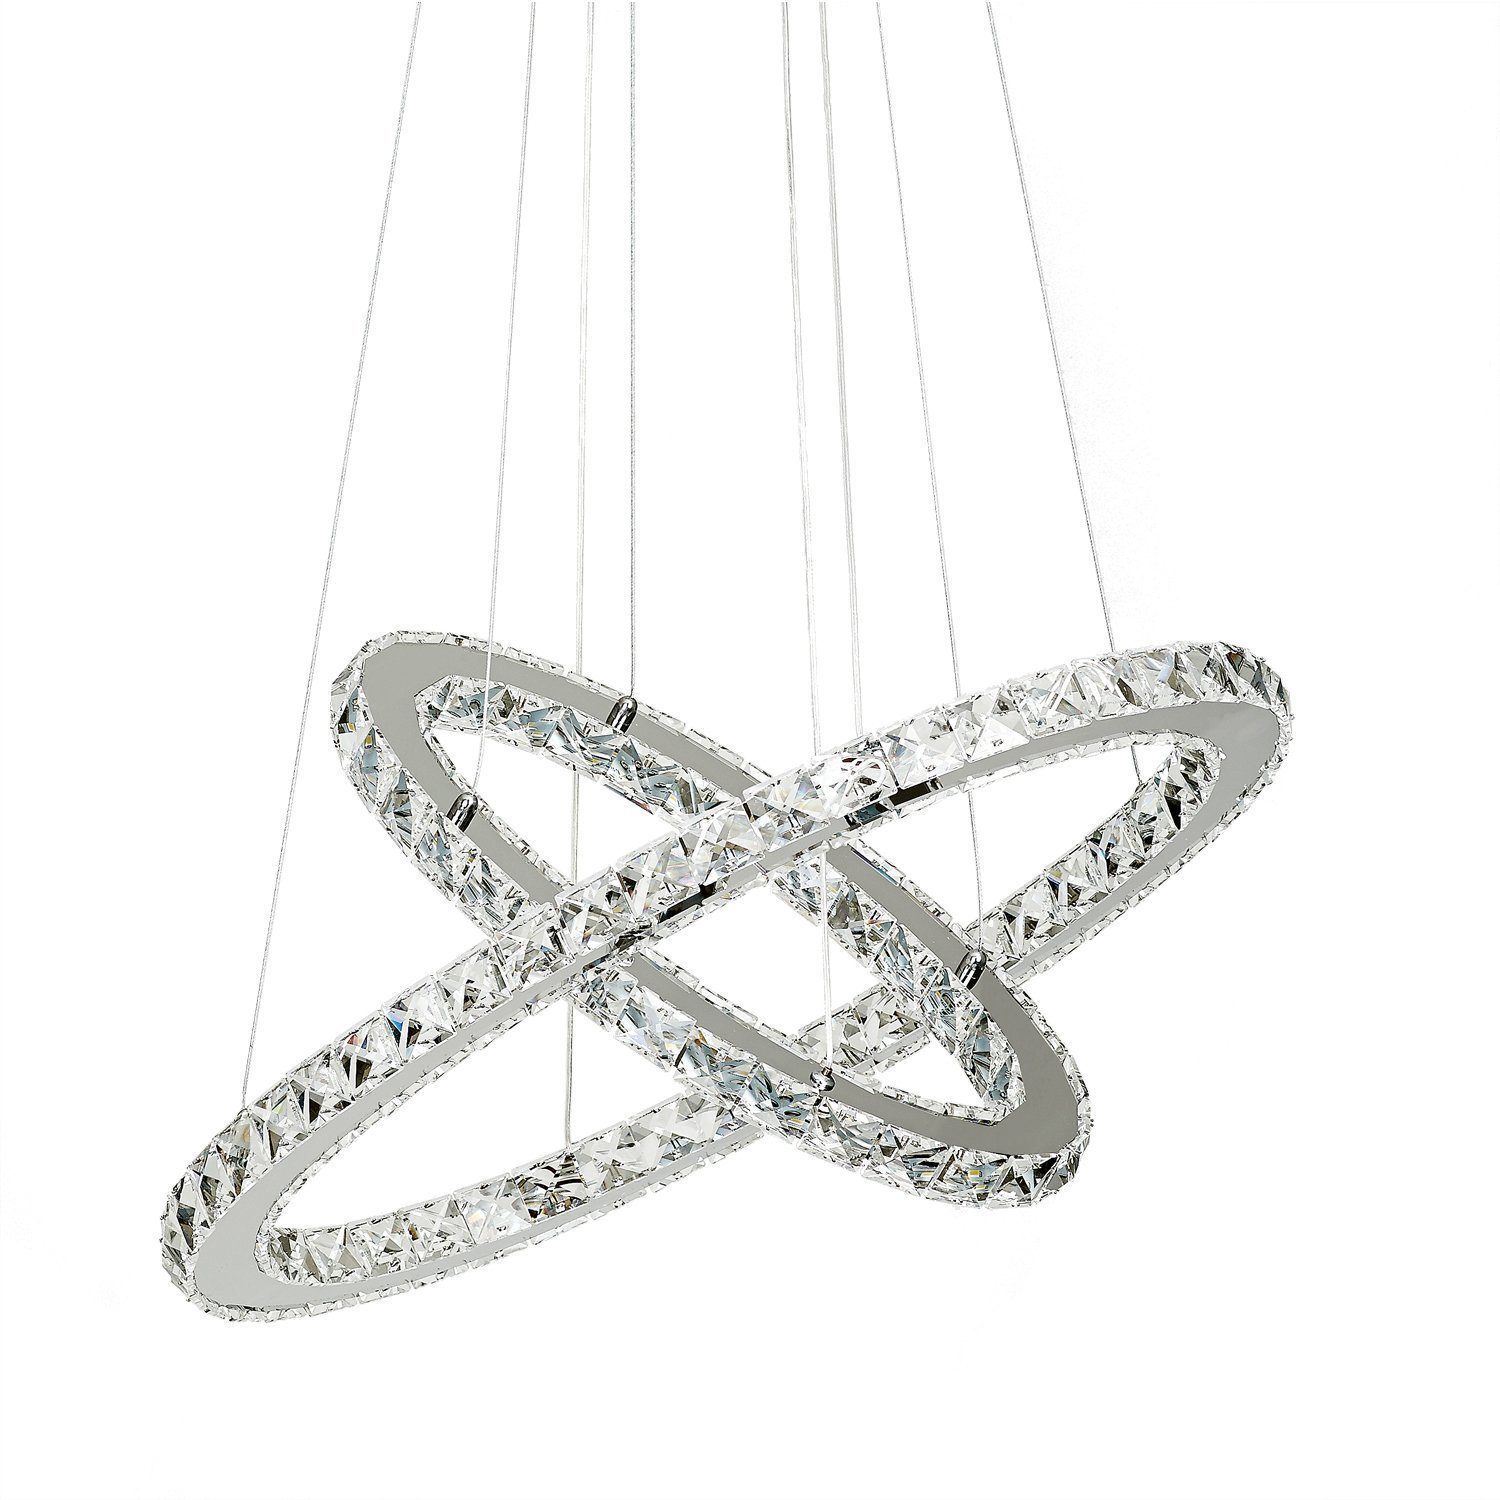 Crystal Chandelier,TOPMAX Design 60cm Cut Crystal LED Pendant With Oval Two Rings,Ceiling Light Fixture by TOPMAX